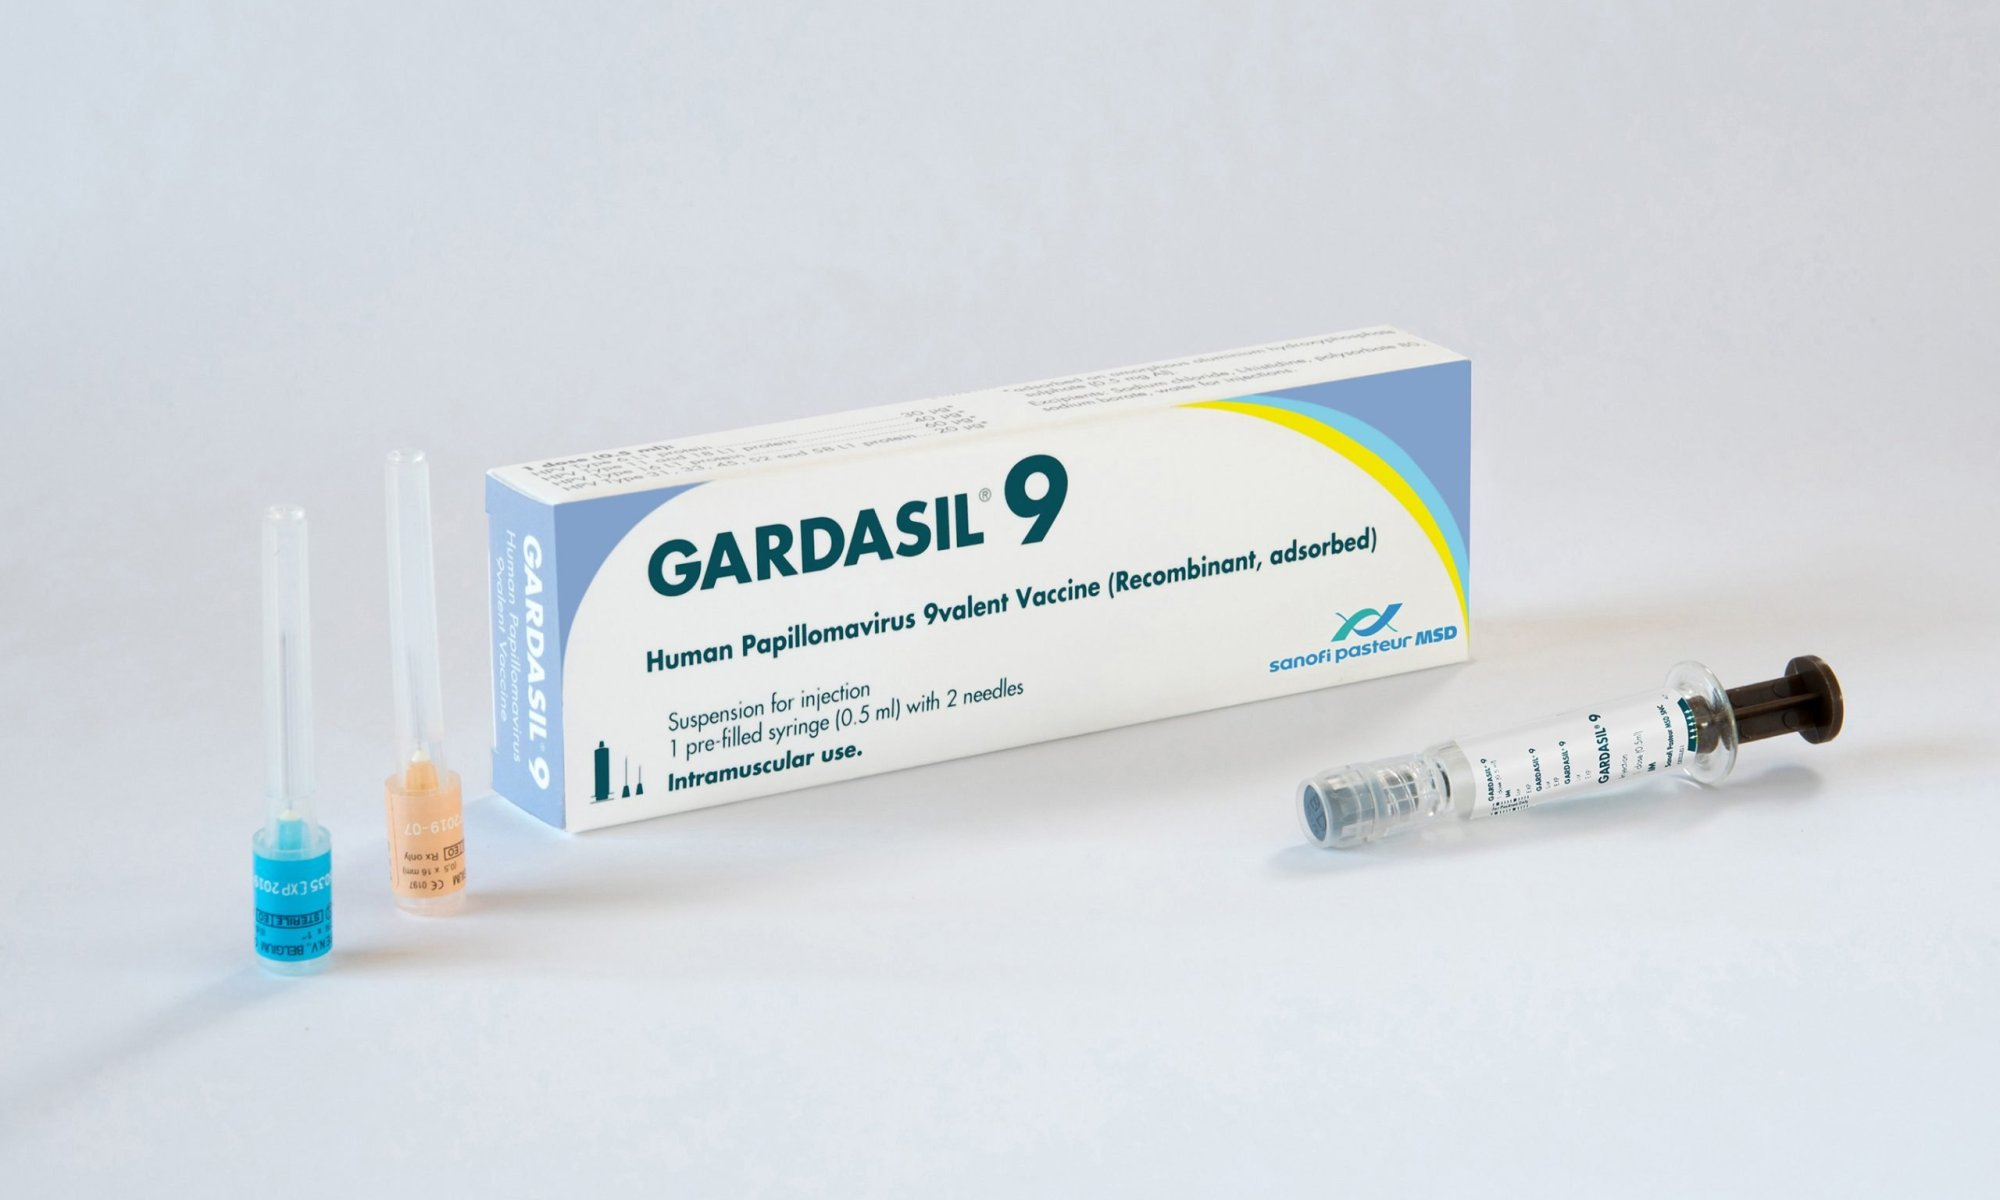 Hpv Vaccine Prevents Genital Warts More Evidence That Gardasil Works